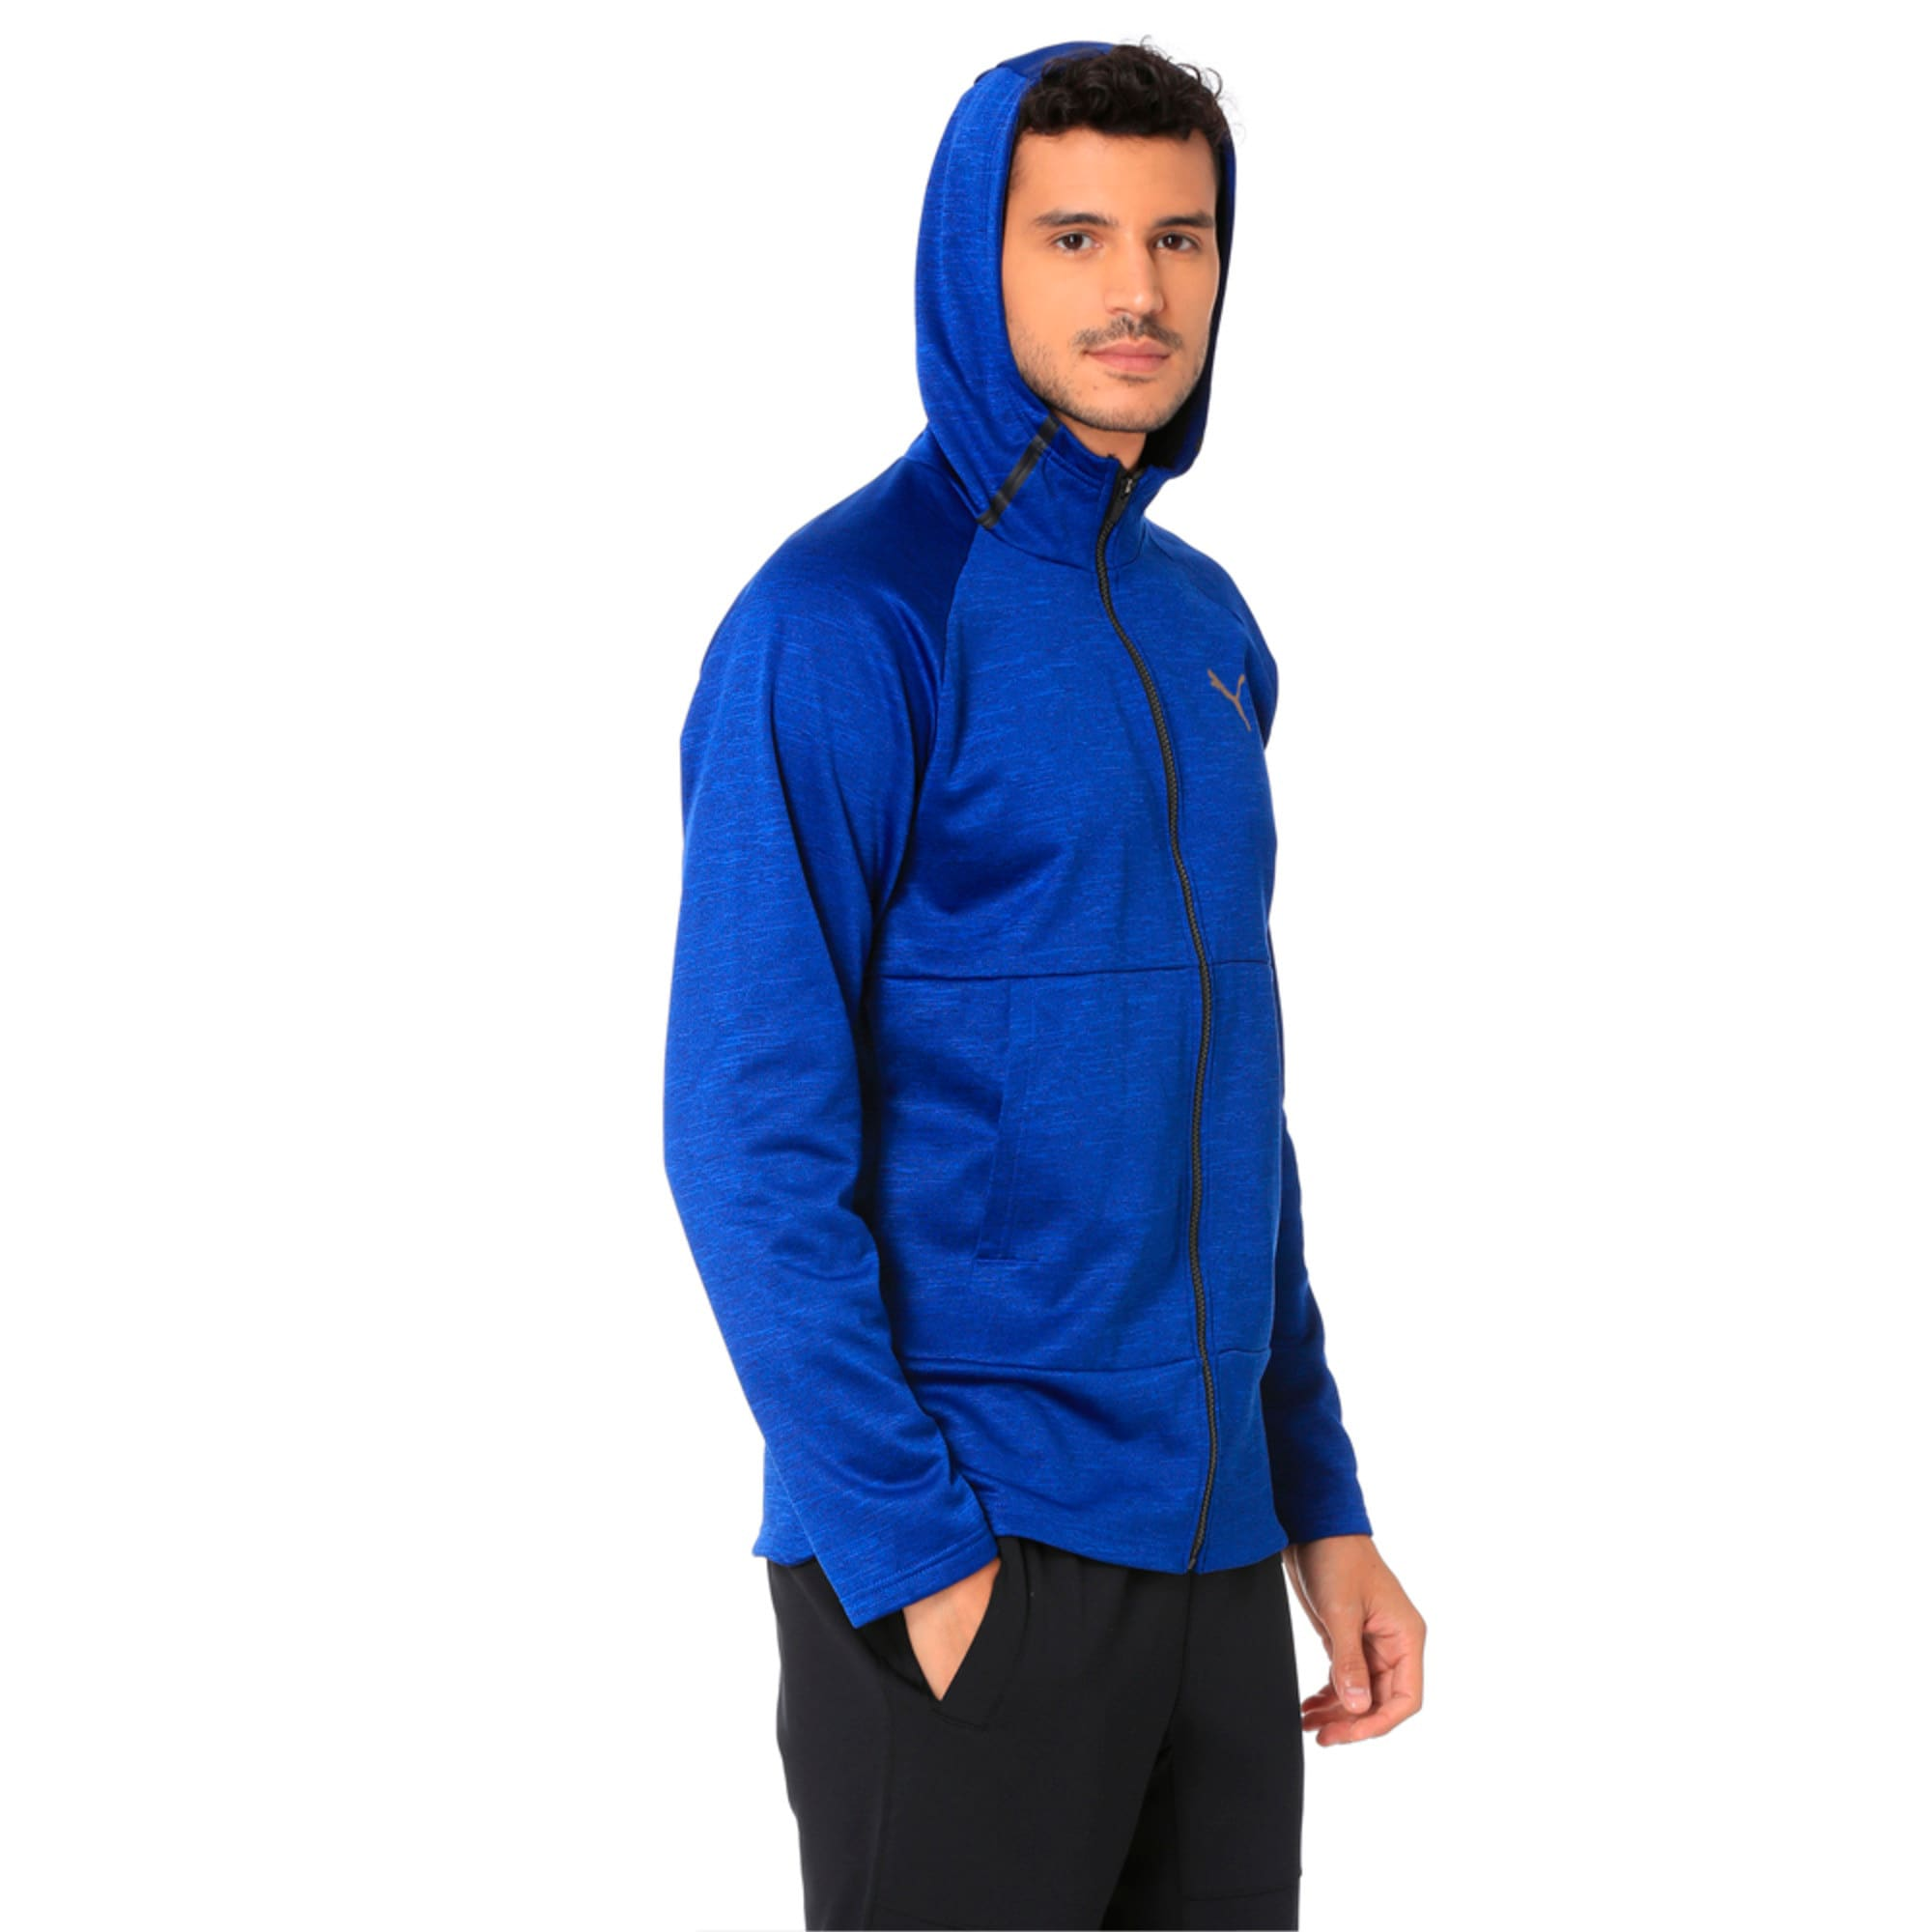 Thumbnail 5 of Q4 BND Tech Protect Jacket Puma Black He, Sodalite Blue Heather, medium-IND